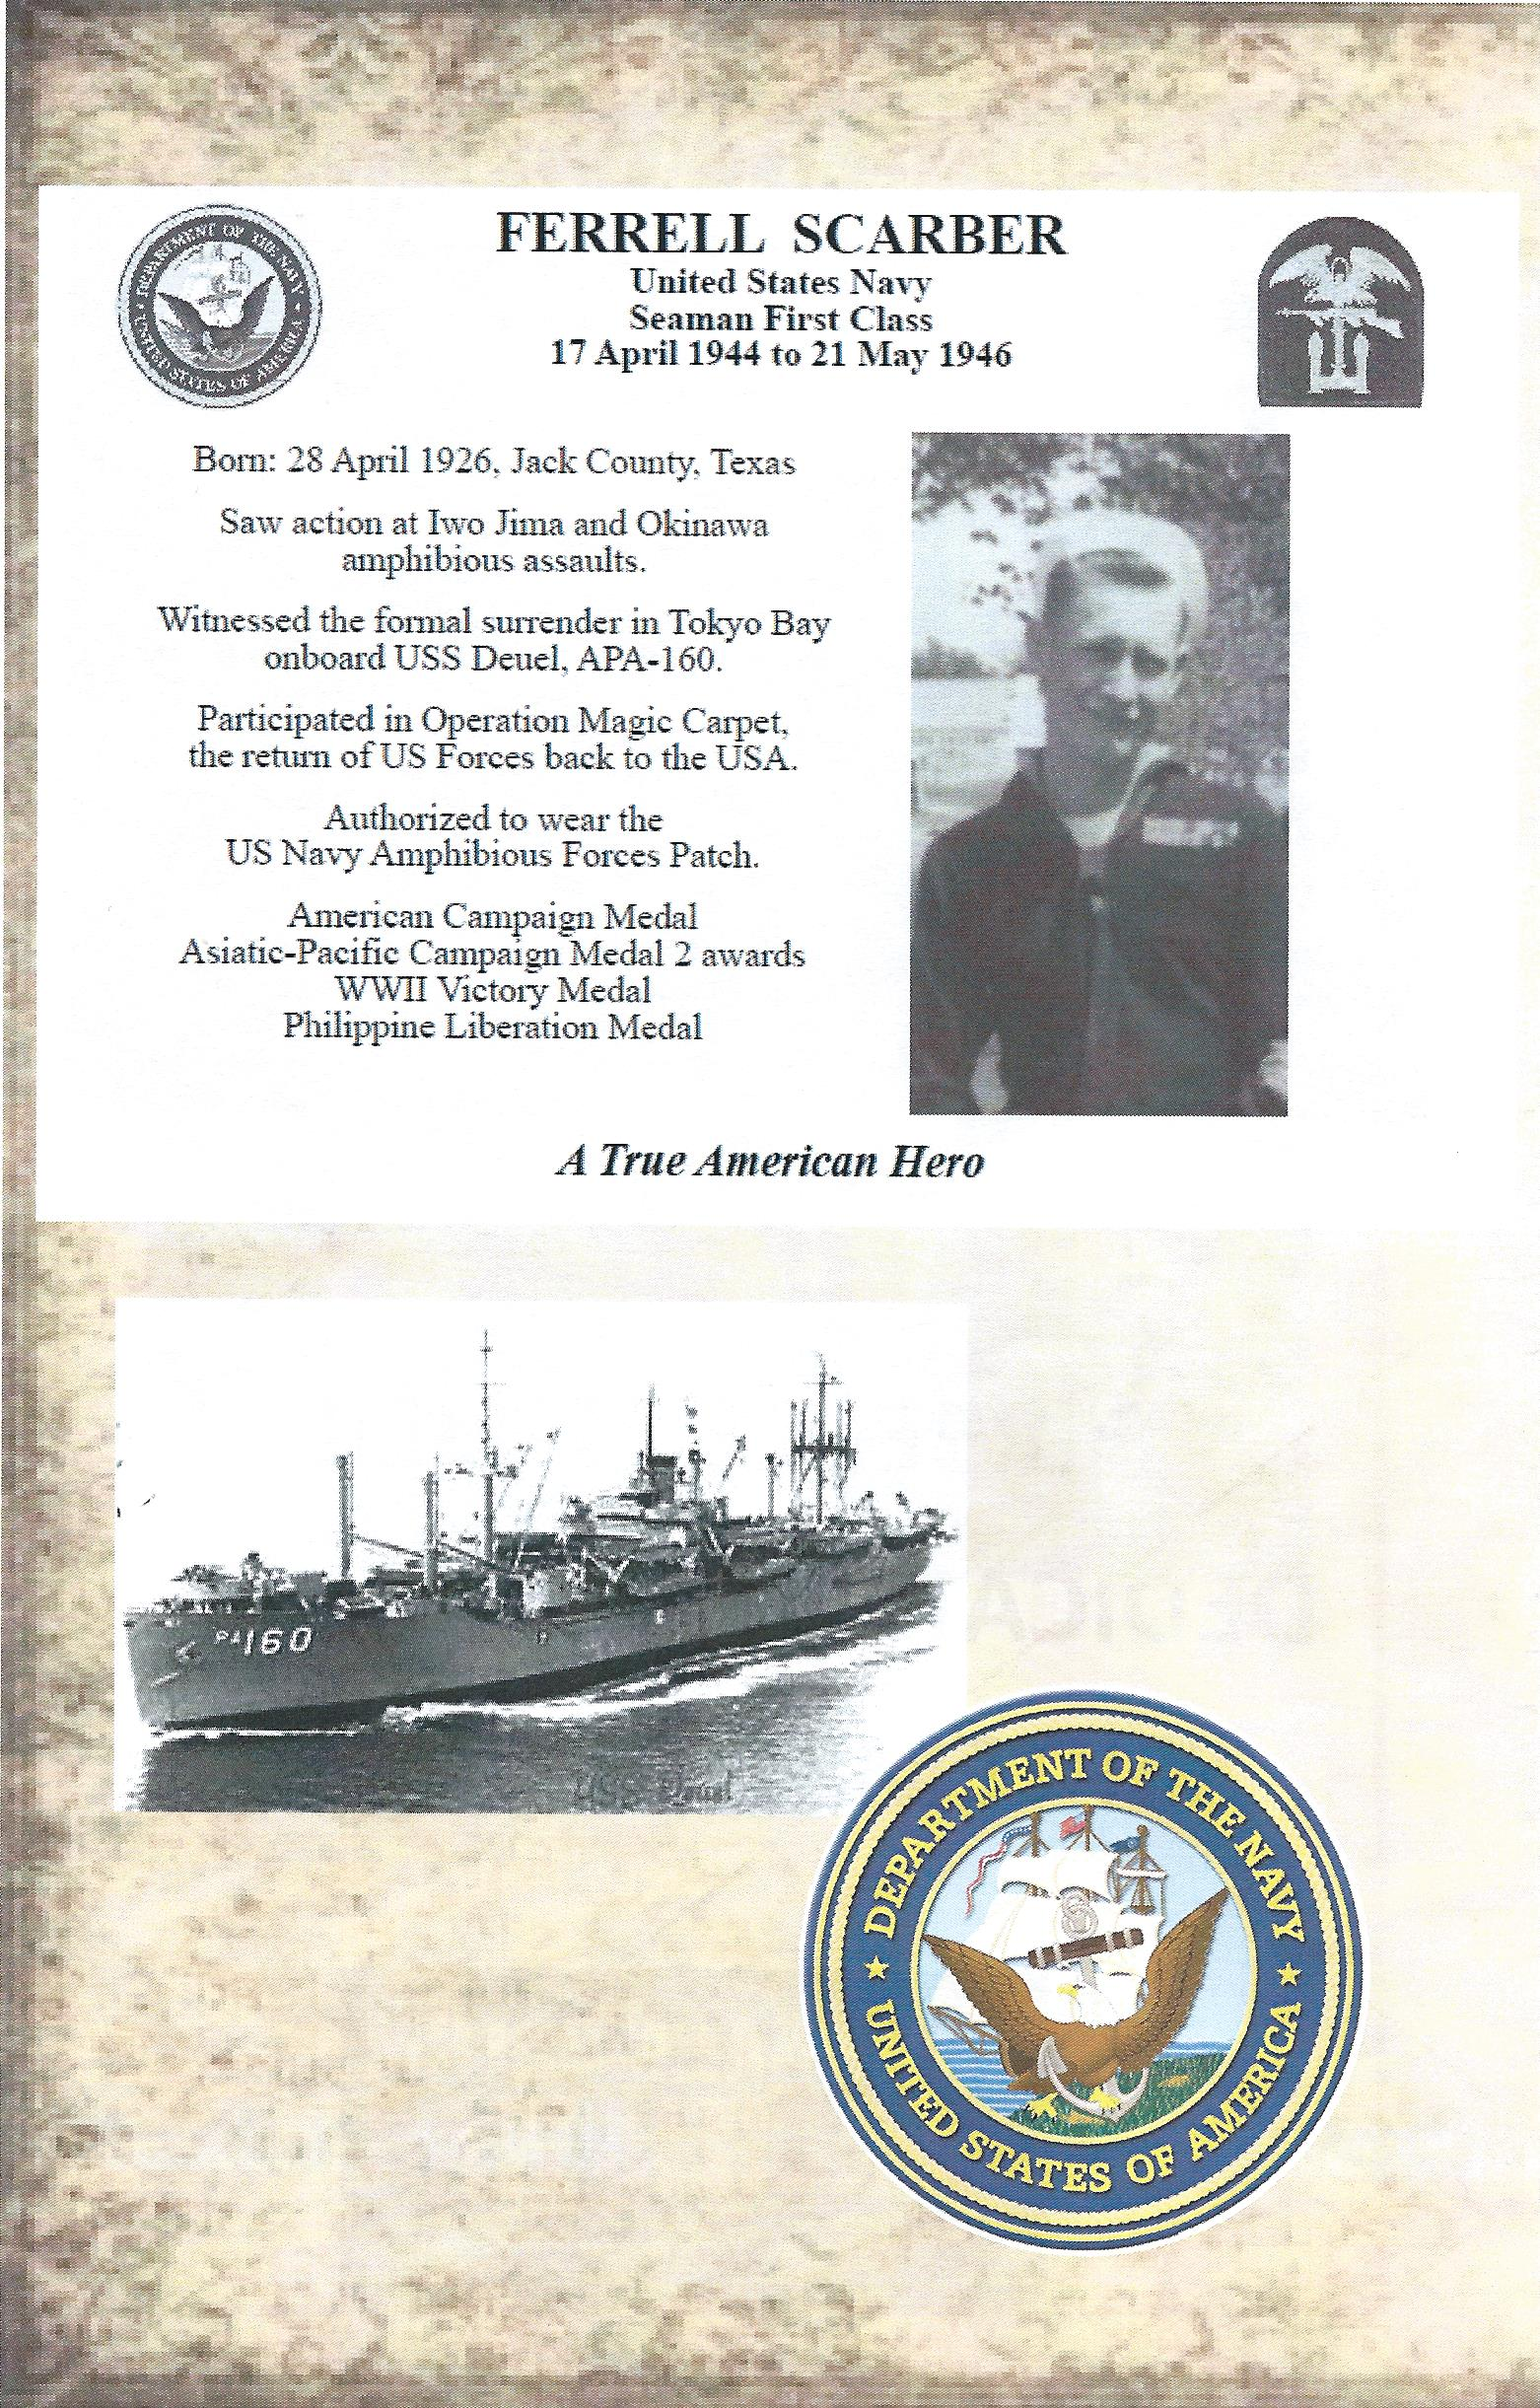 Grundy Ferrell Scarber Military History